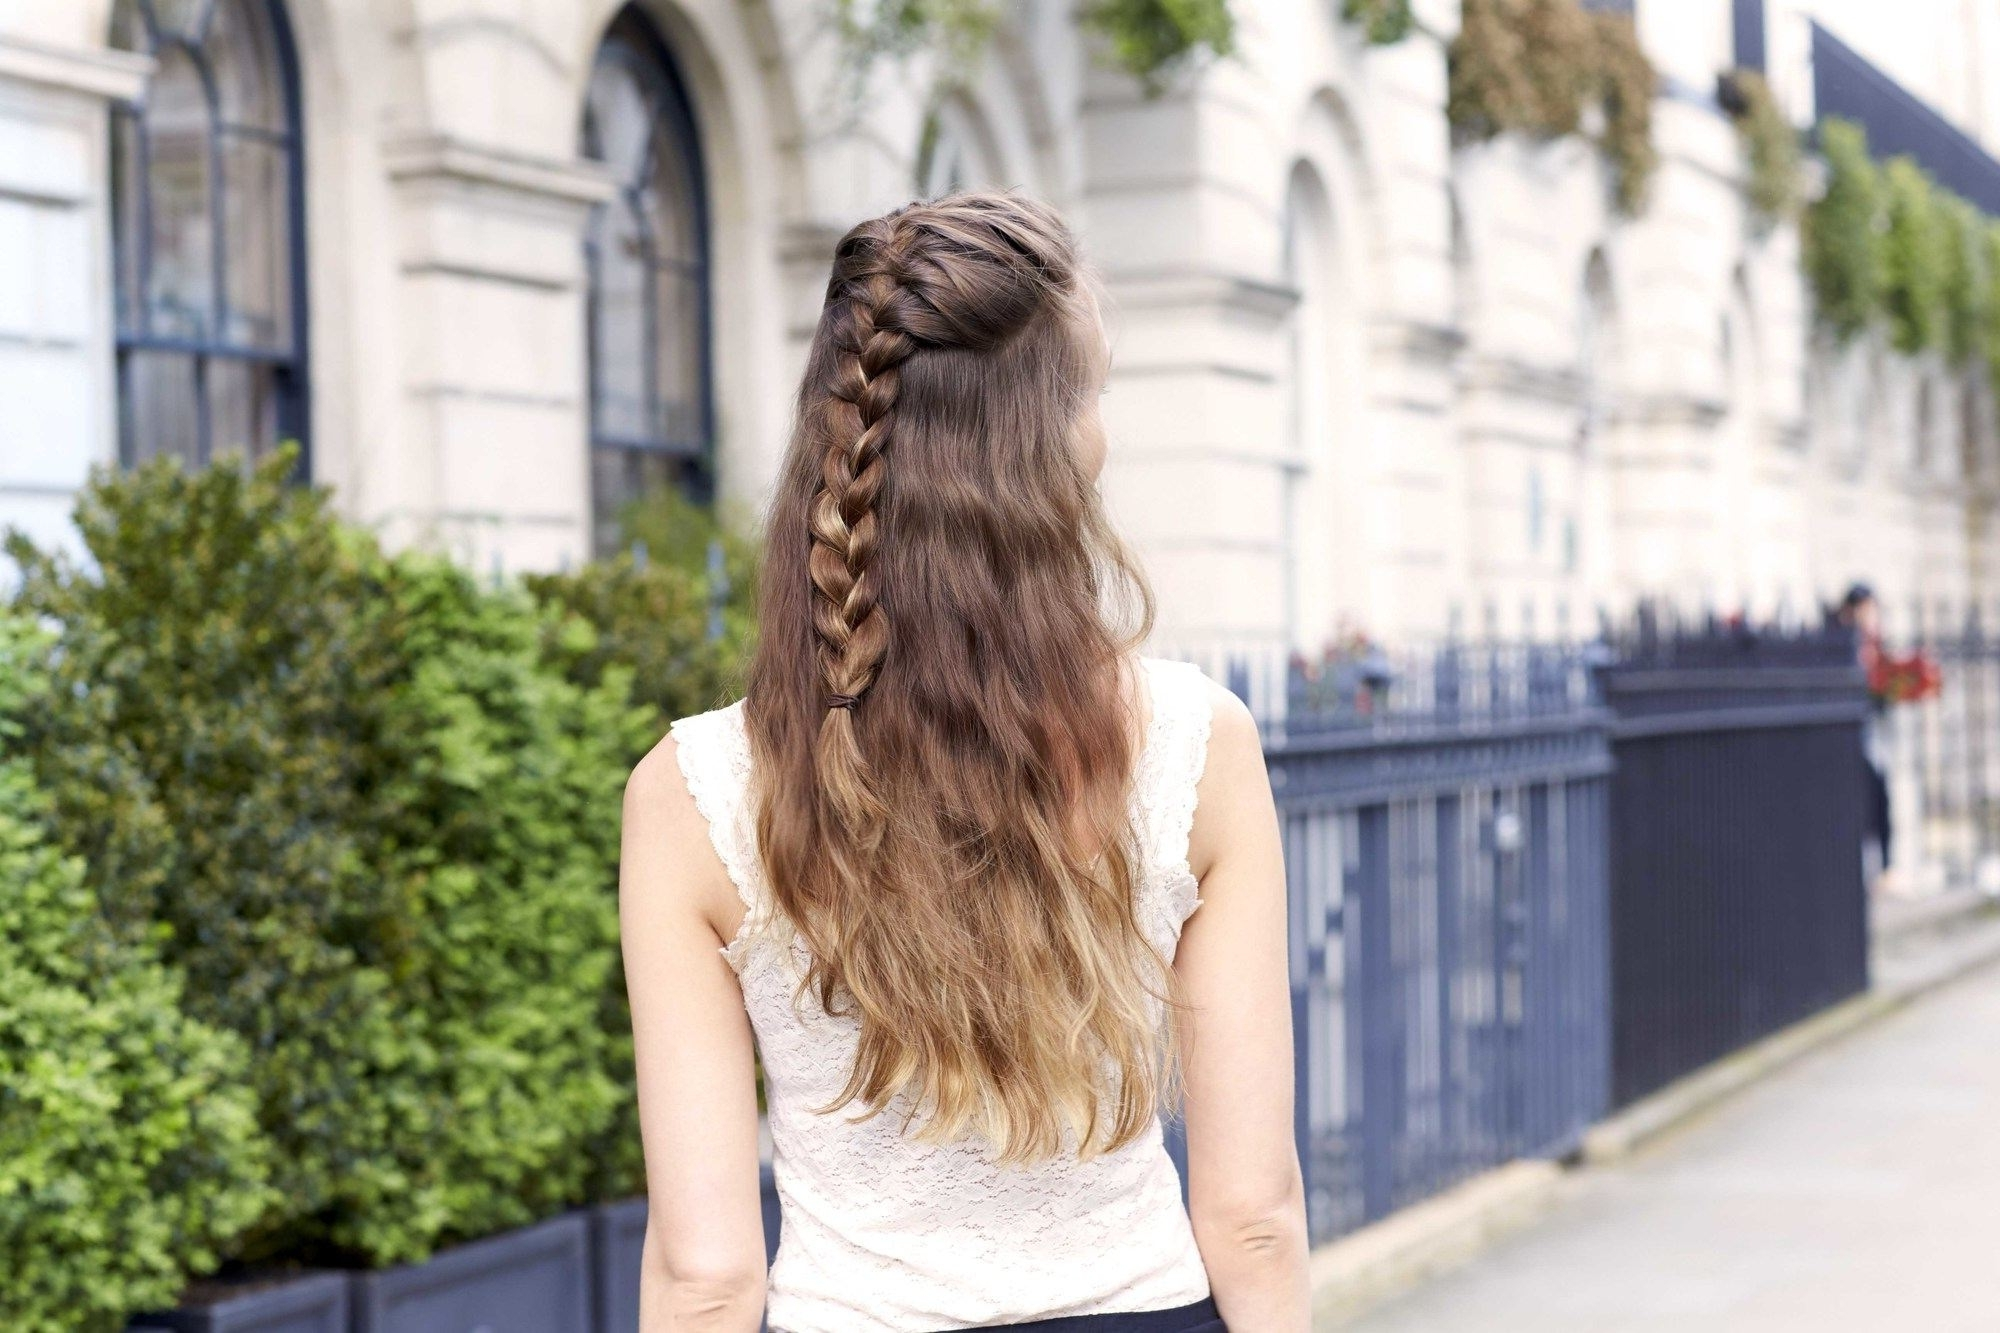 Fashionable Beachy Braids Hairstyles Intended For French Braid Hairstyles: 8 Casual Weekend Plaits To Try (View 7 of 20)